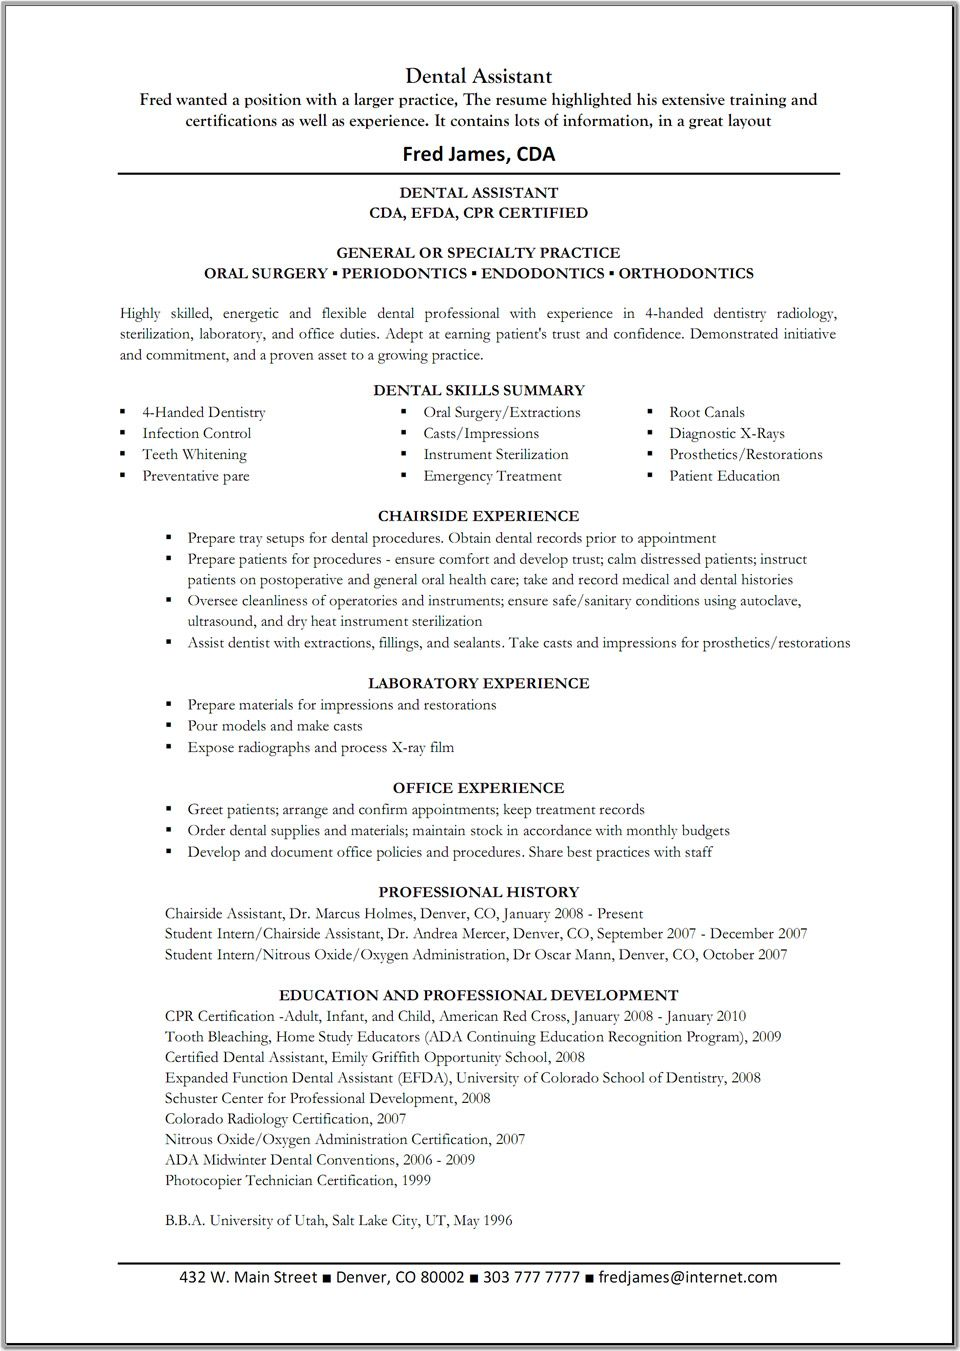 Dental Resume Template Dental Assistant Resume Template  Great Resume Templates  Dental